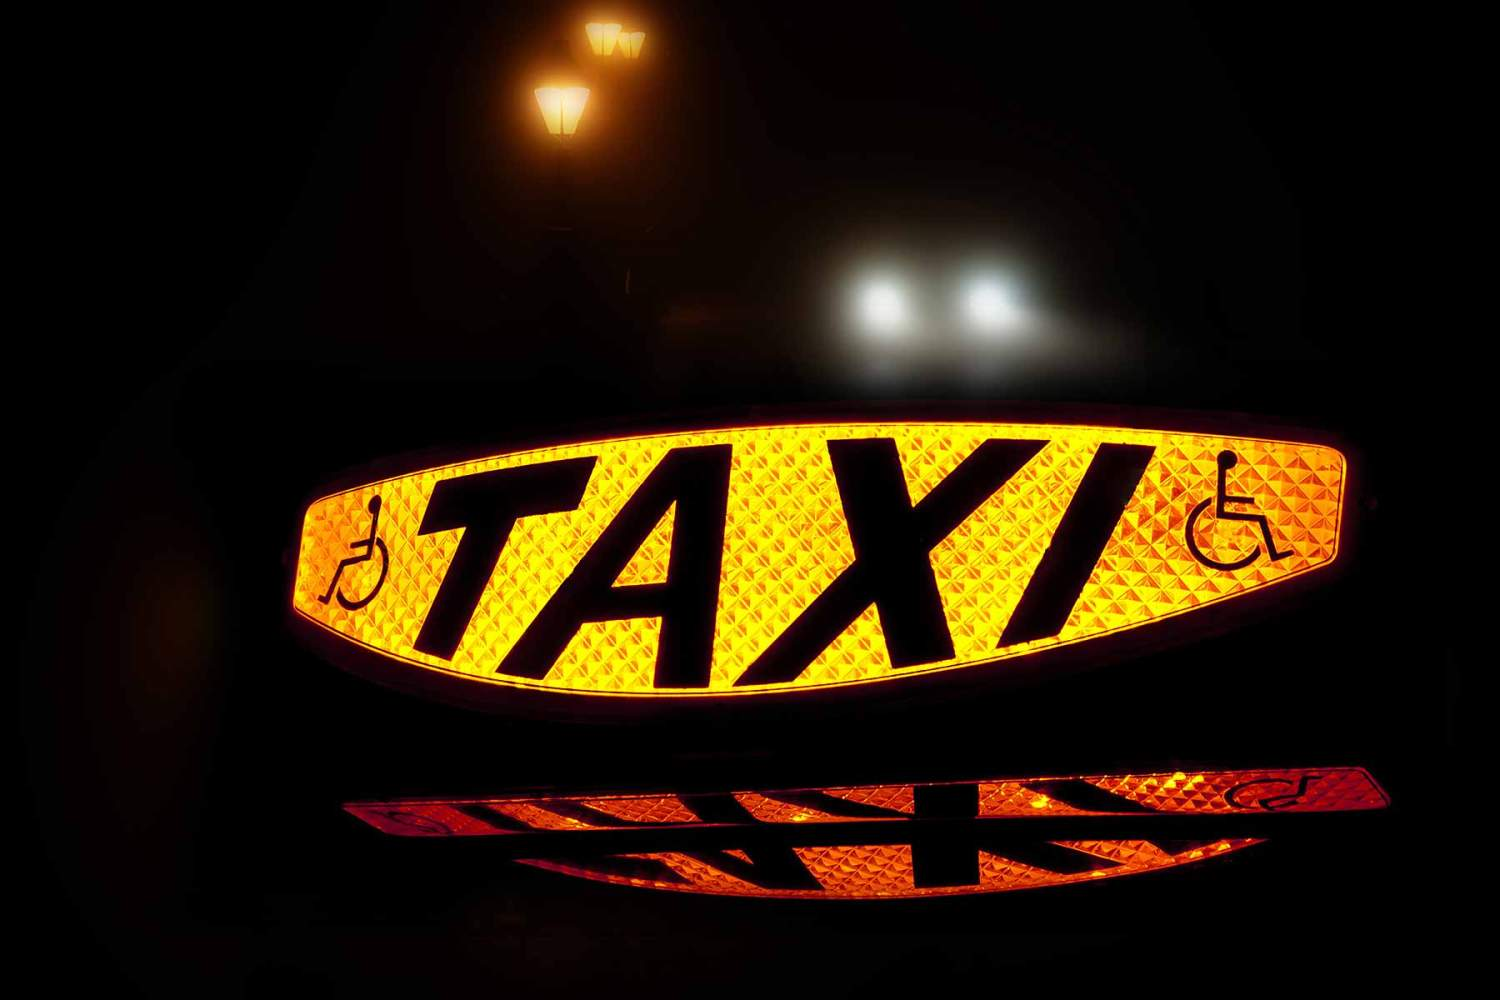 Disabled-friendly taxi sign